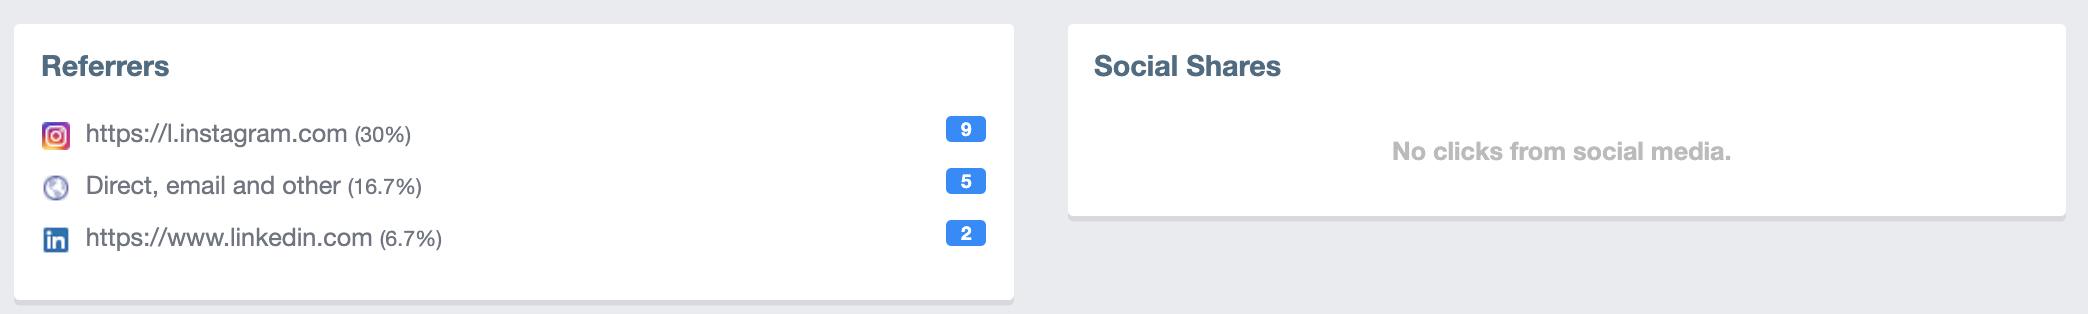 Link referrers and social shares